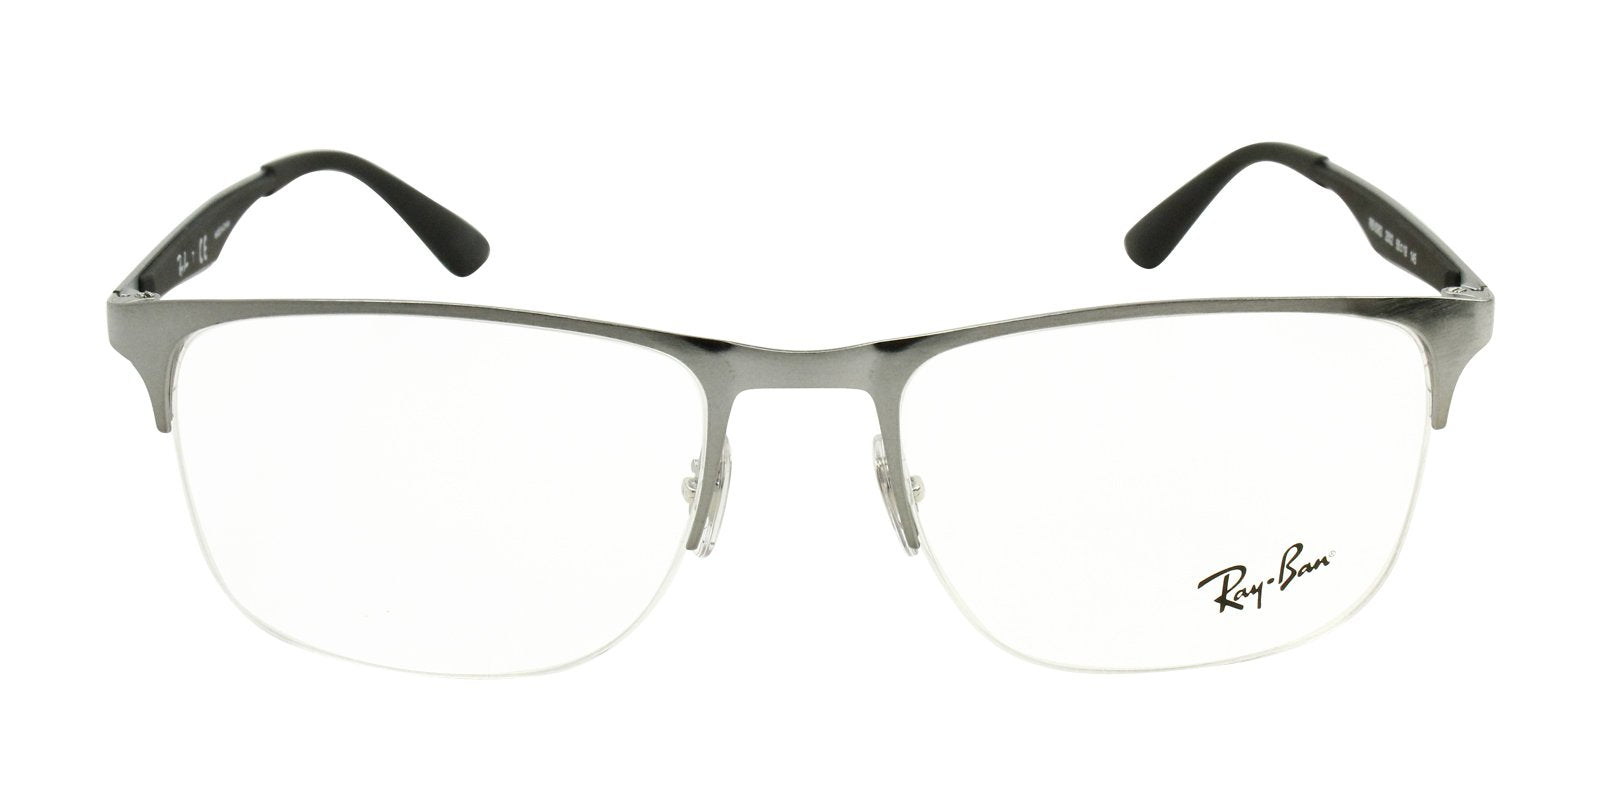 Ray Ban Rx - RX6362 Silver Semi-Rimless Men Eyeglasses - 55mm-Eyeglasses-Designer Eyes